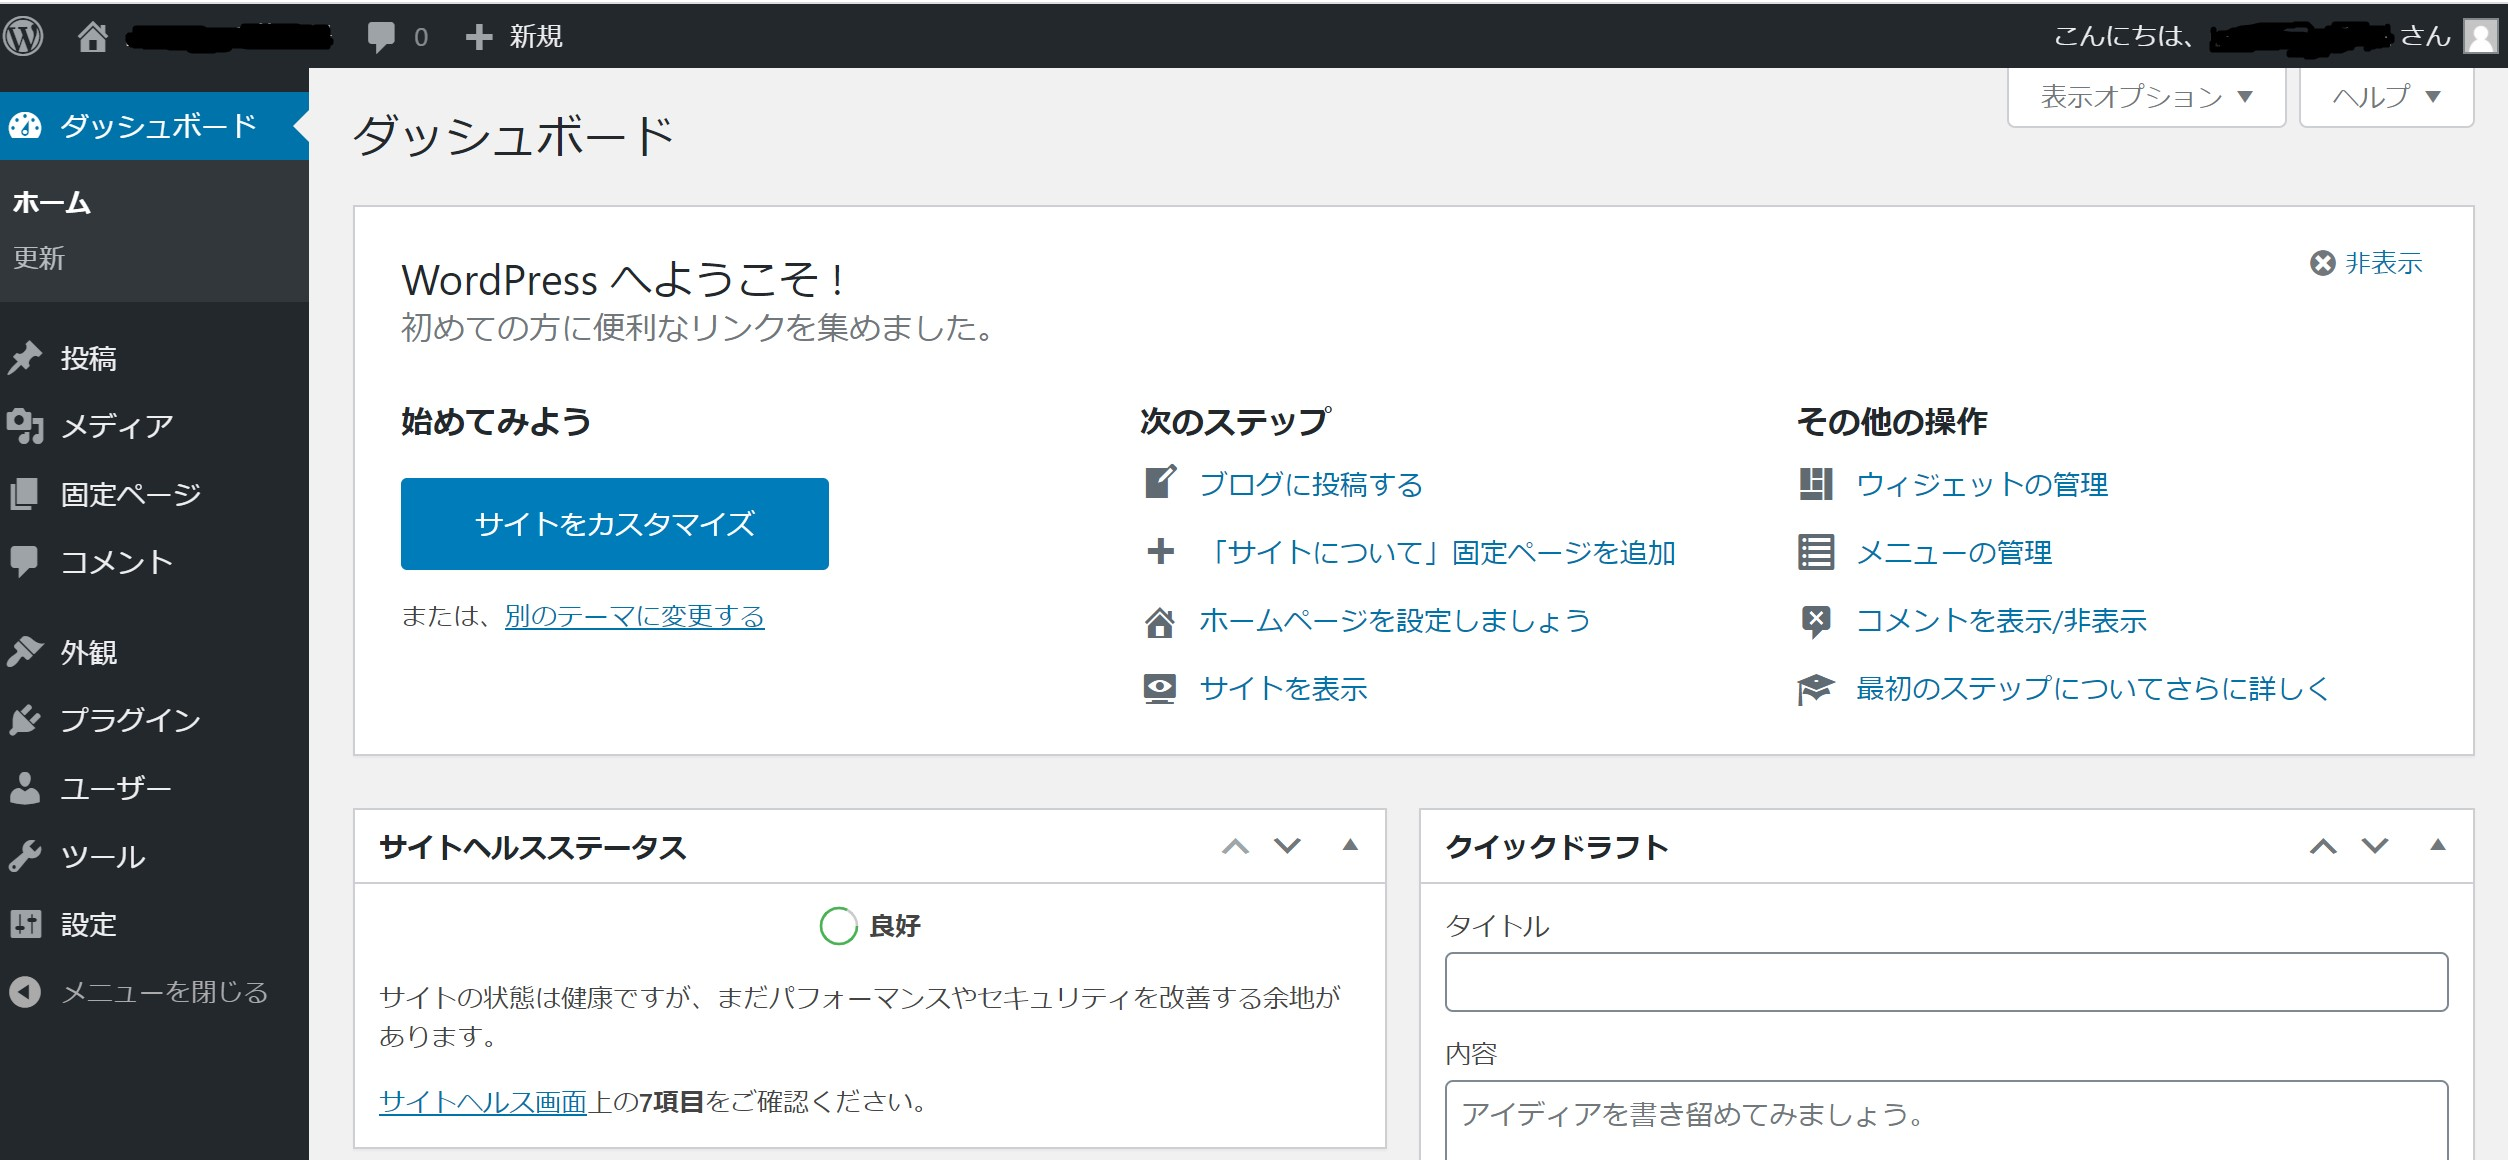 Xserver-WP-top-first